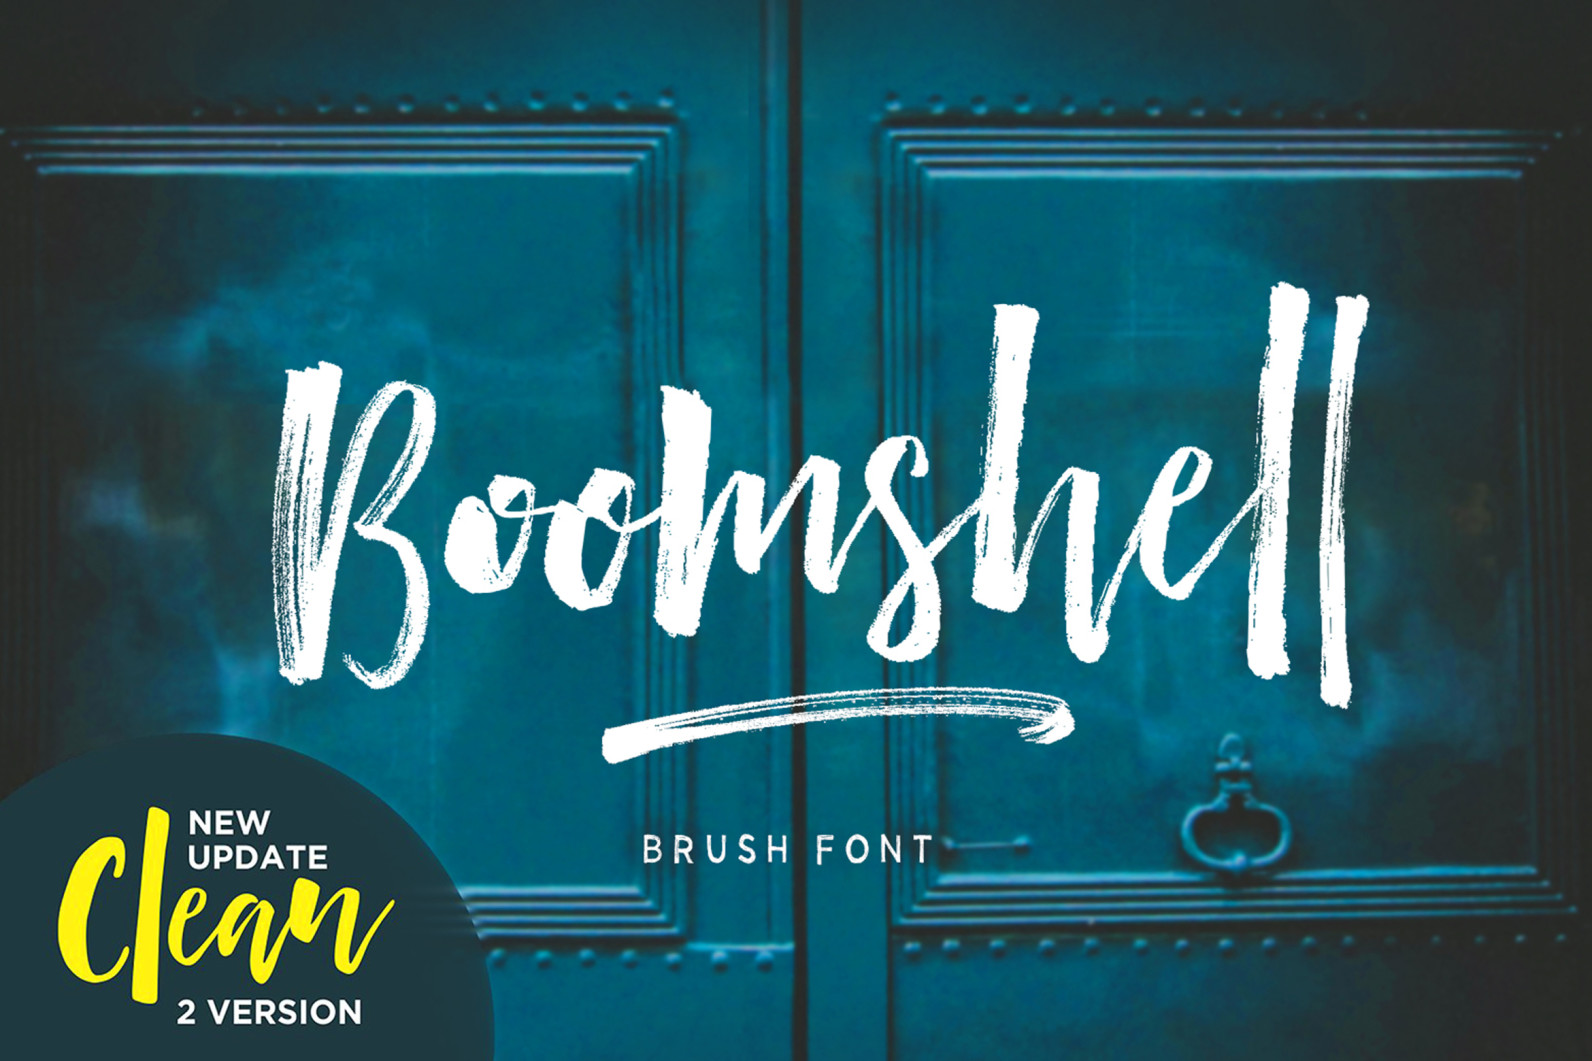 Boomshell